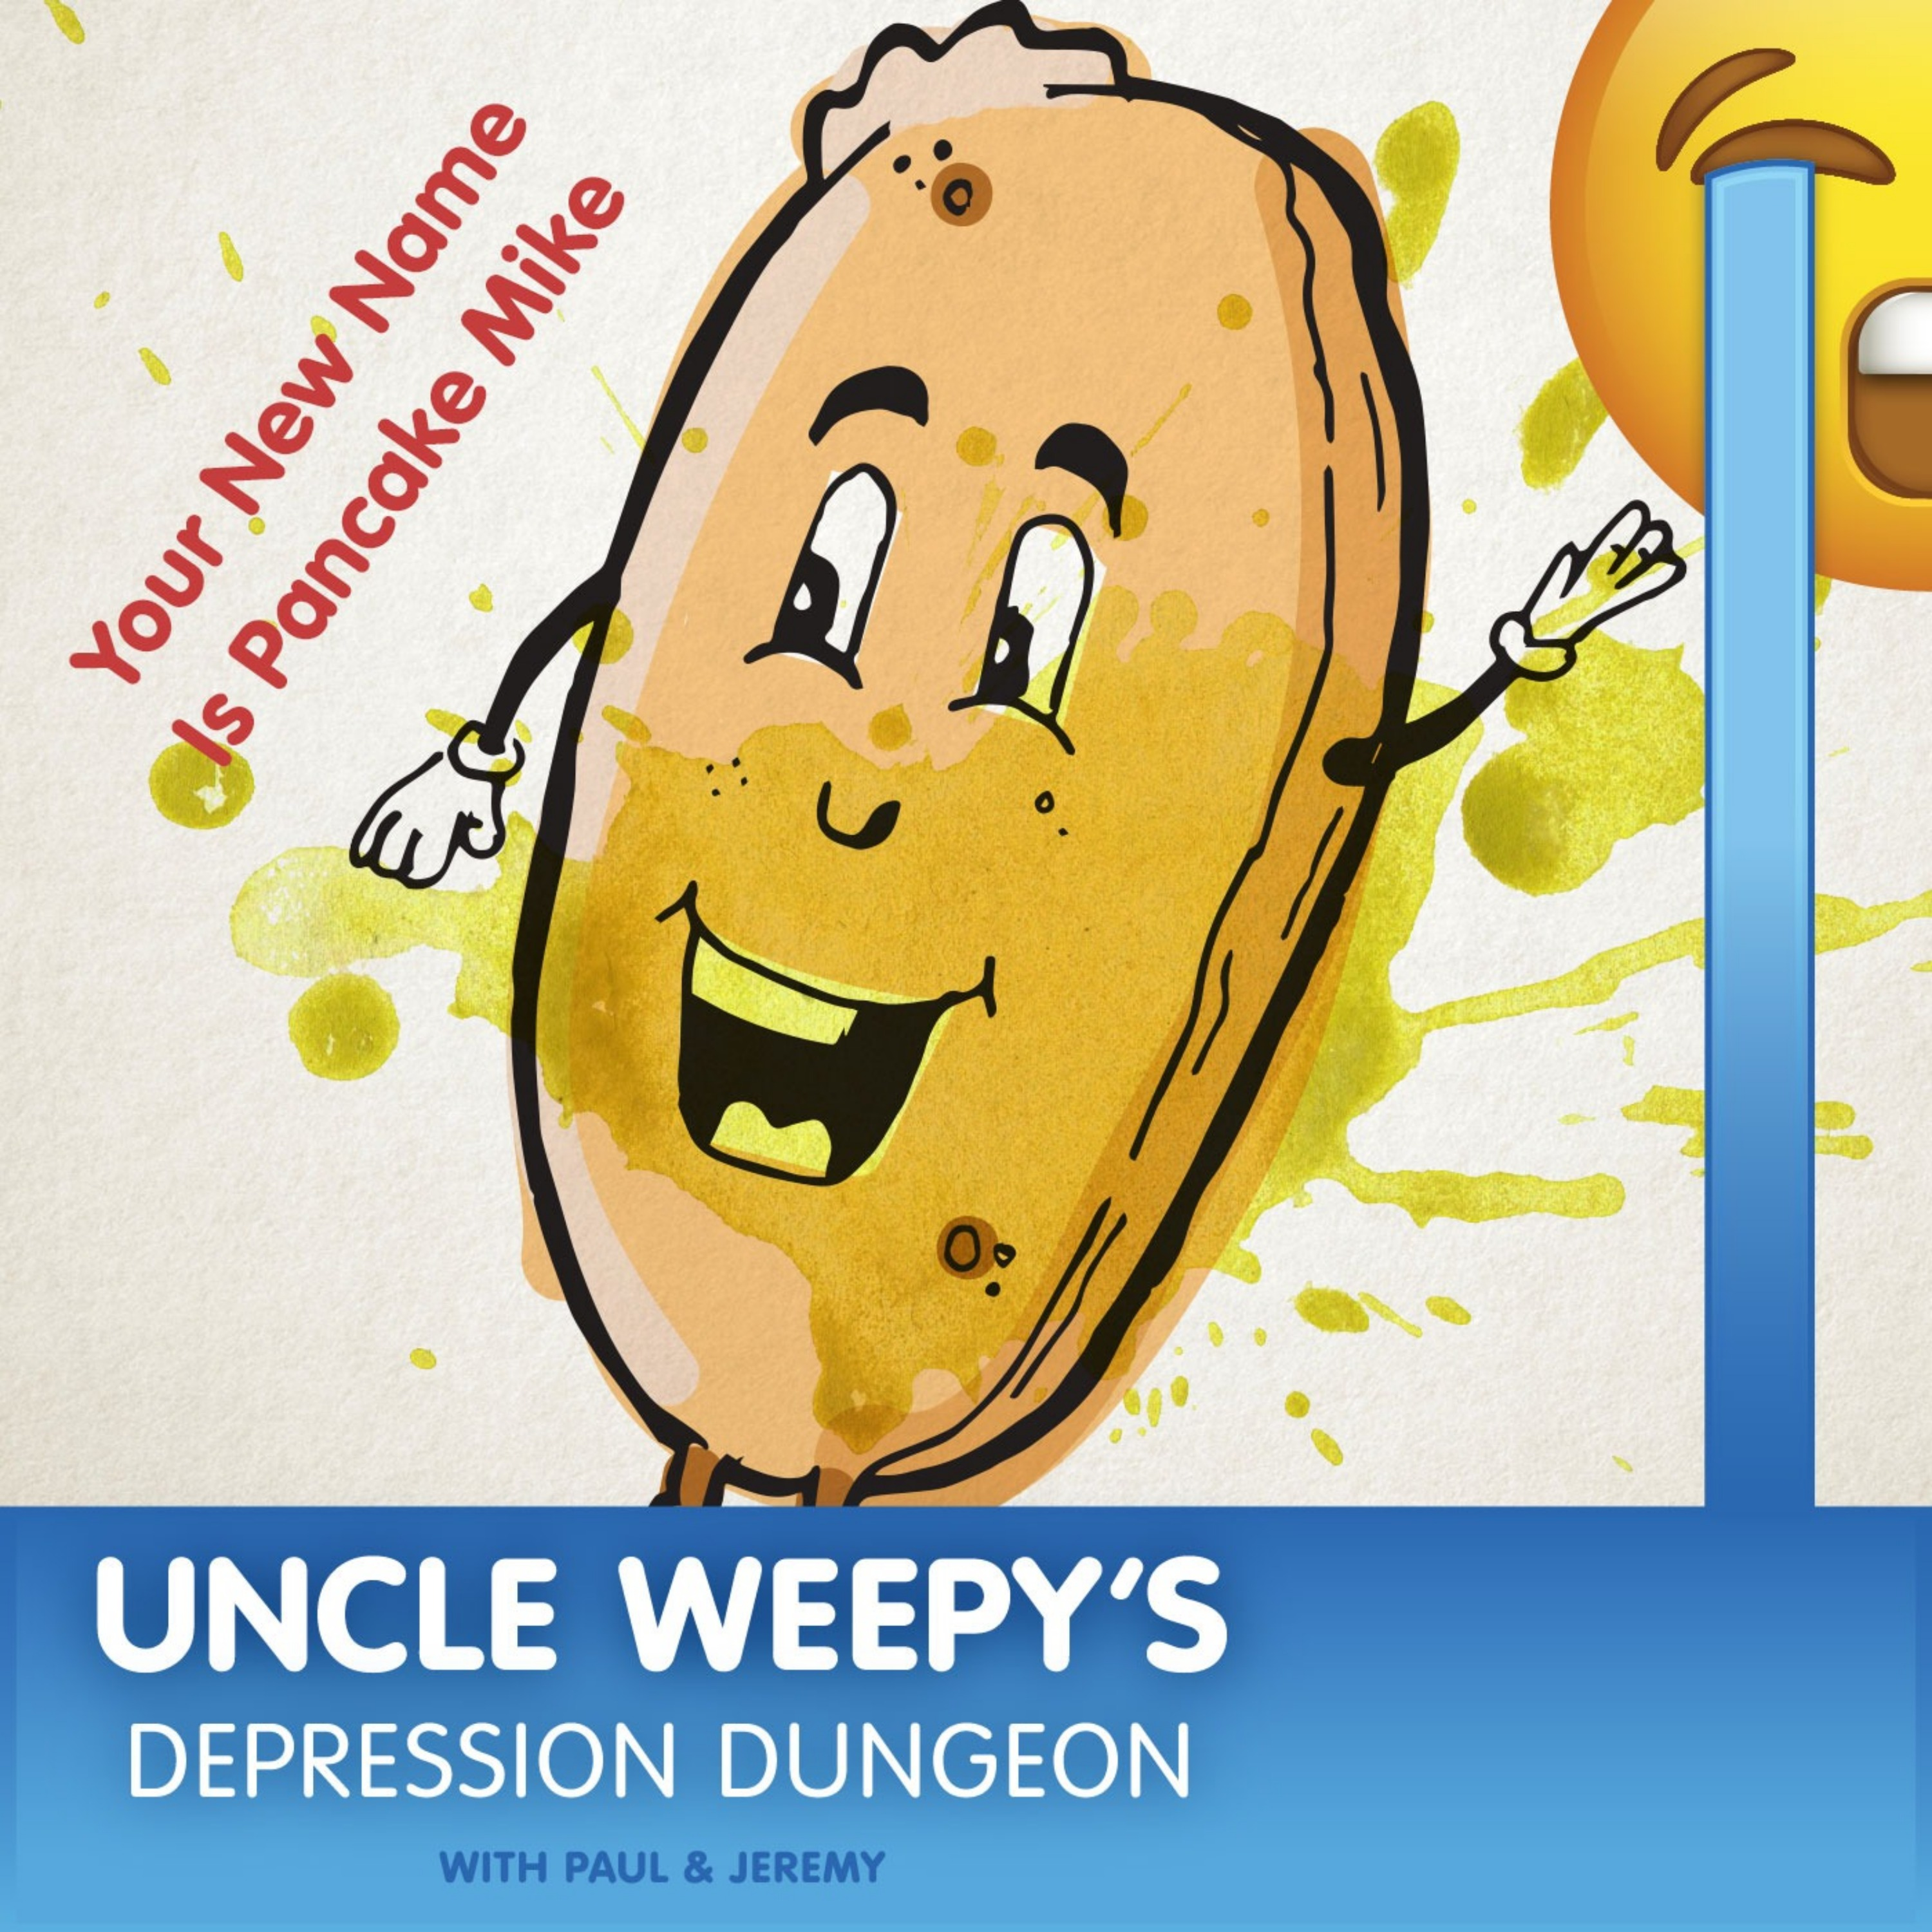 Uncle Weepy's Depression Dungeon